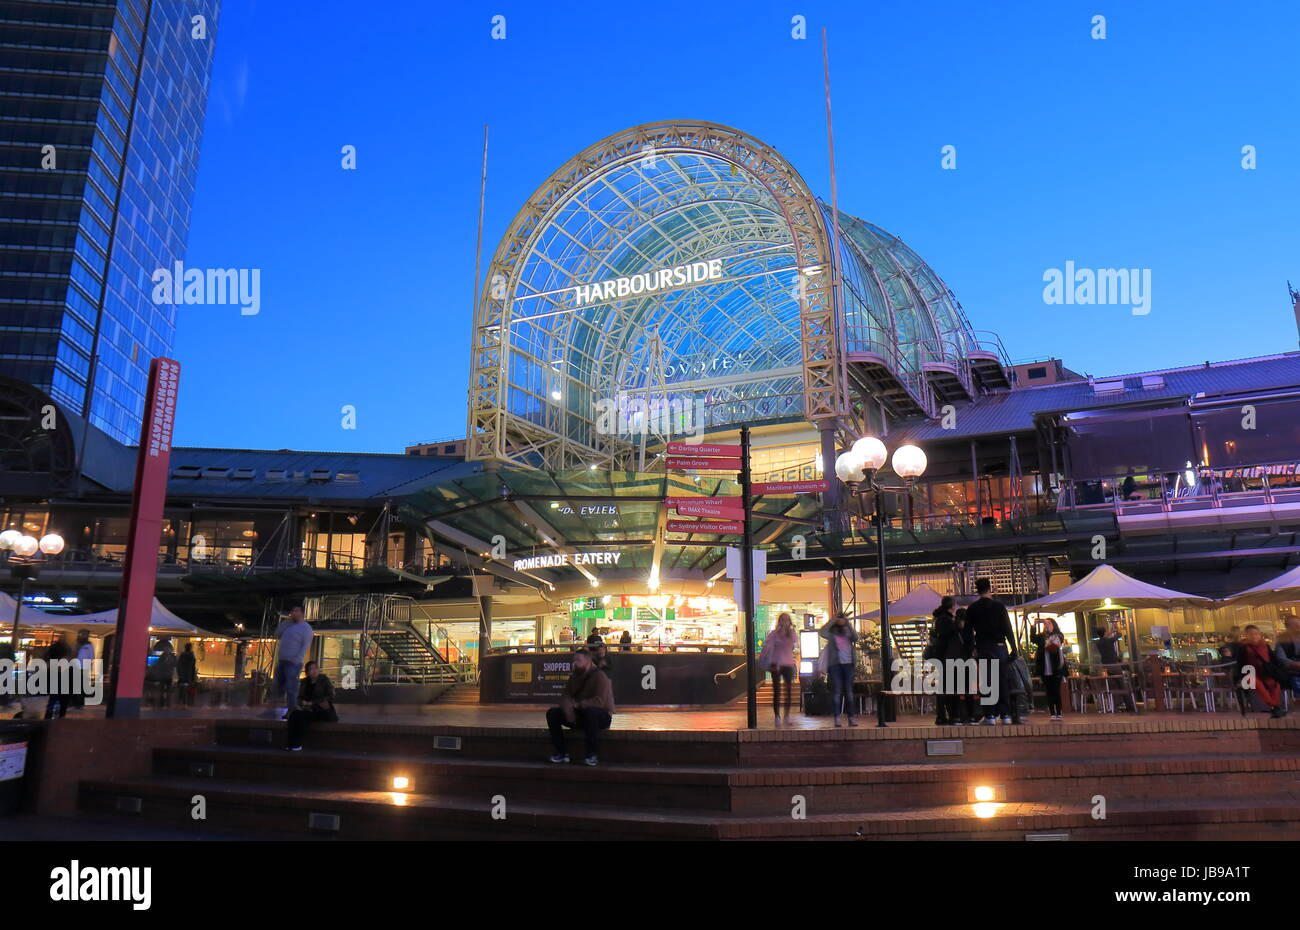 People visit Darling Harbour Harbourside in Sydney Australia. - Stock Image